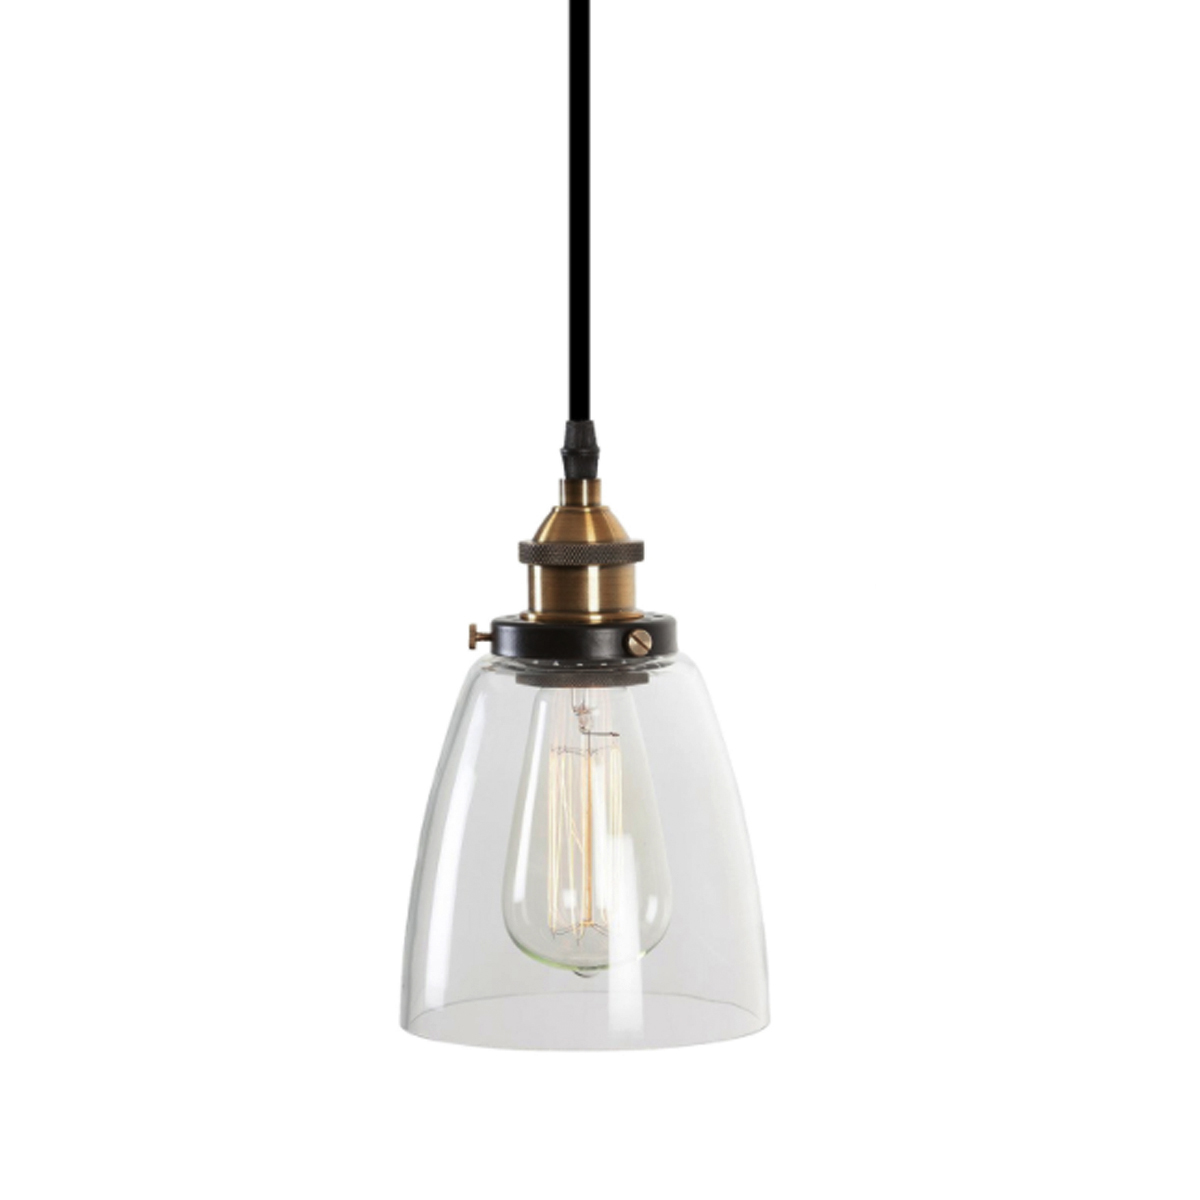 Pendant Lights Temple Webster - Pendant loghts